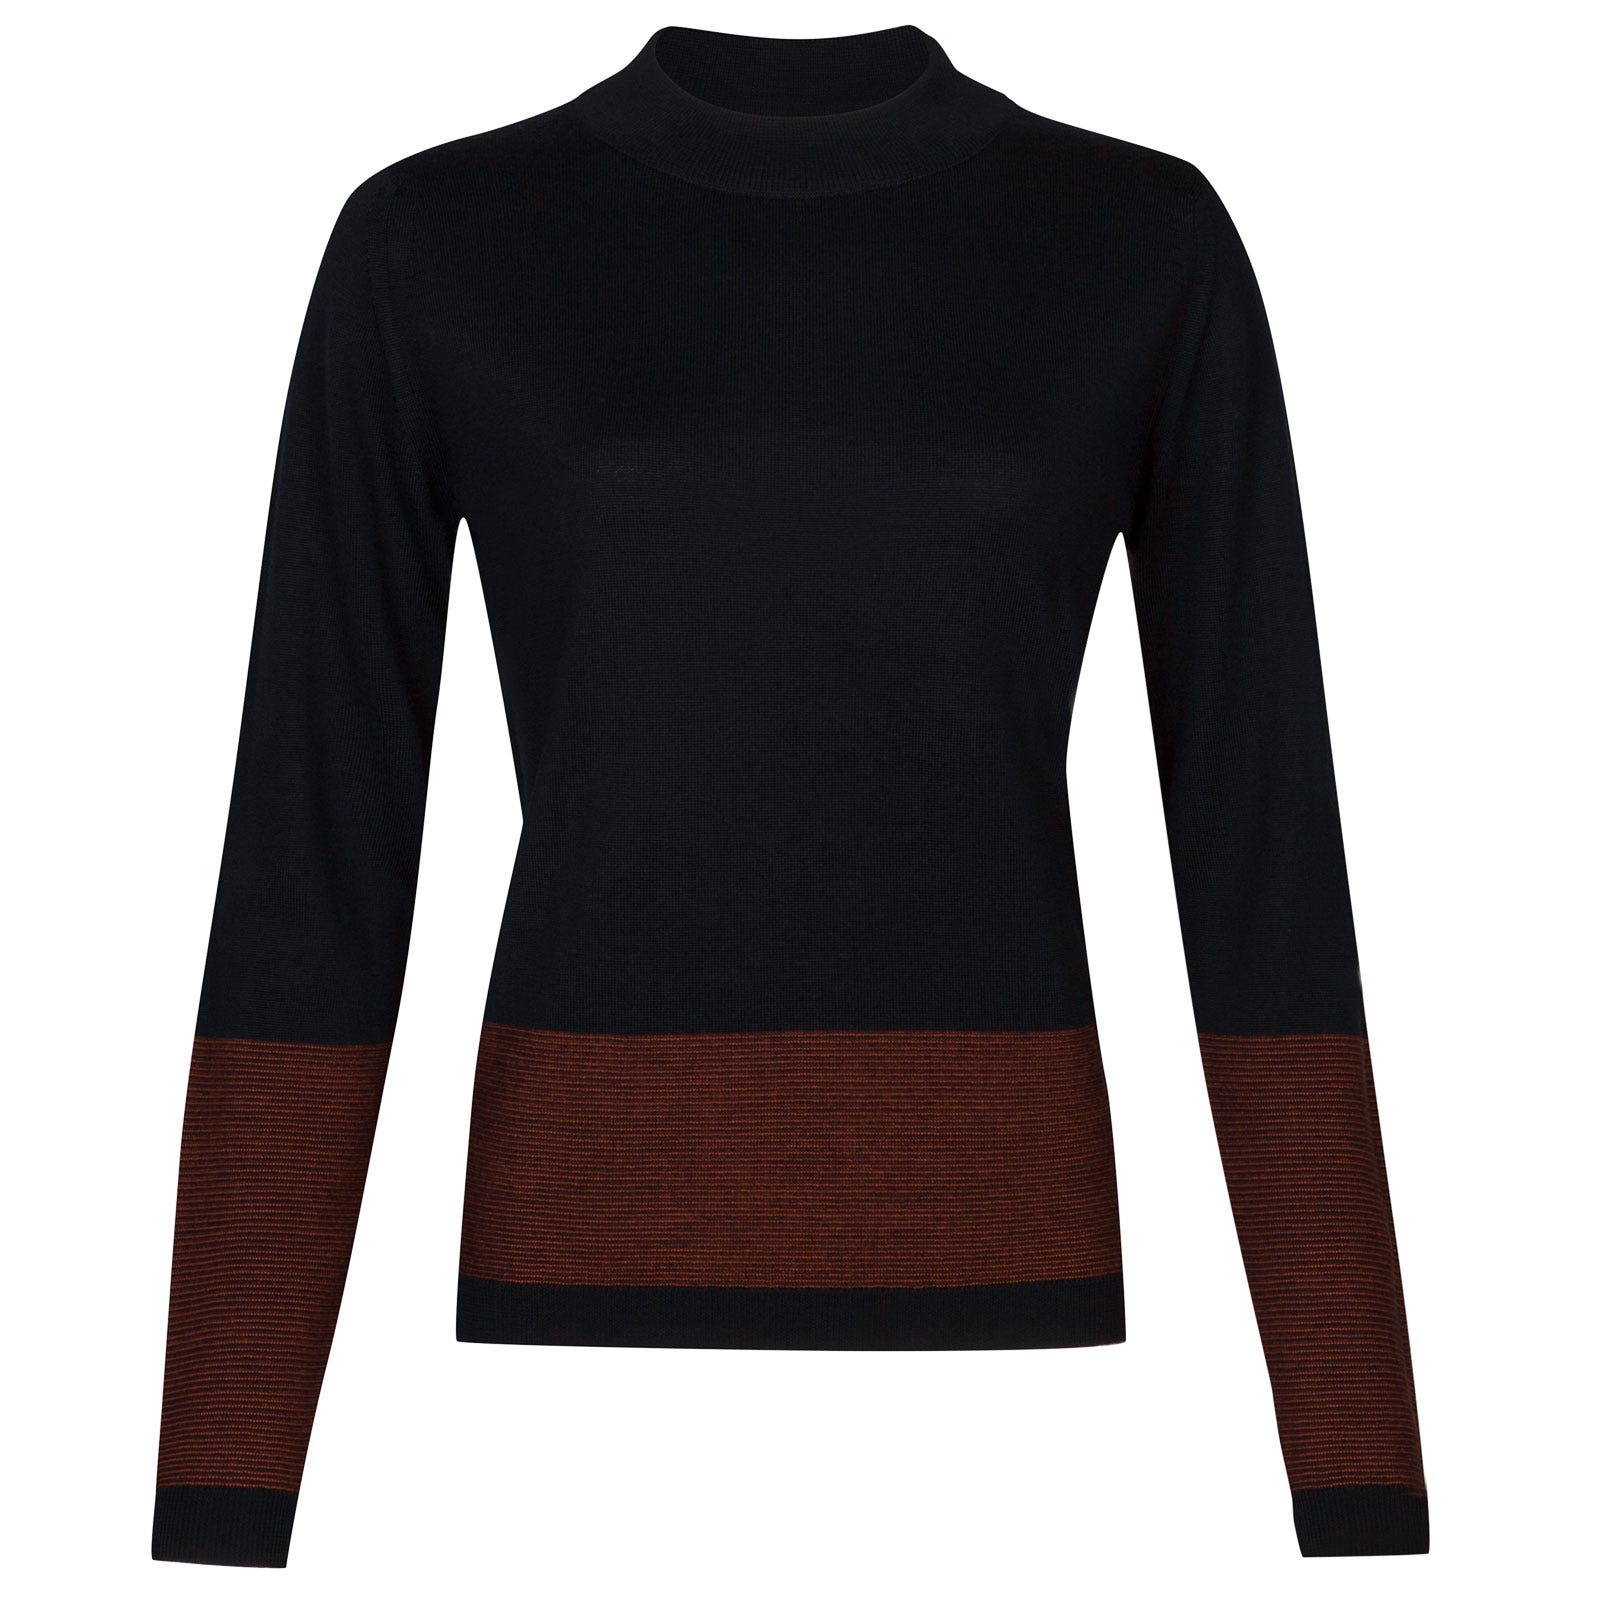 John Smedley sable Merino Wool Sweater in Midnight/Flare Orange-L